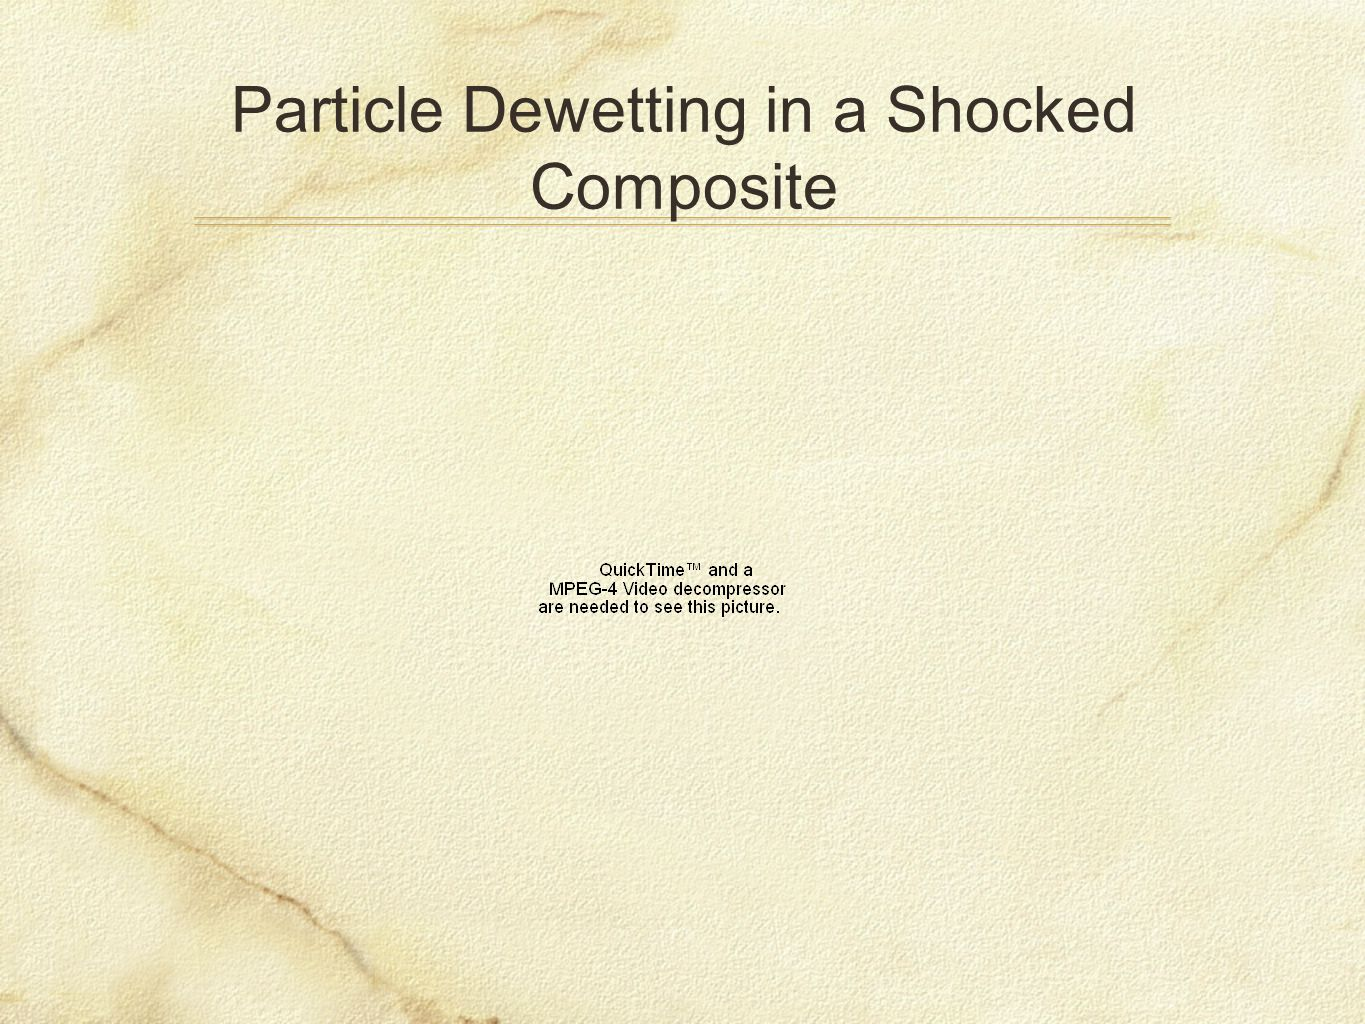 Particle Dewetting in a Shocked Composite